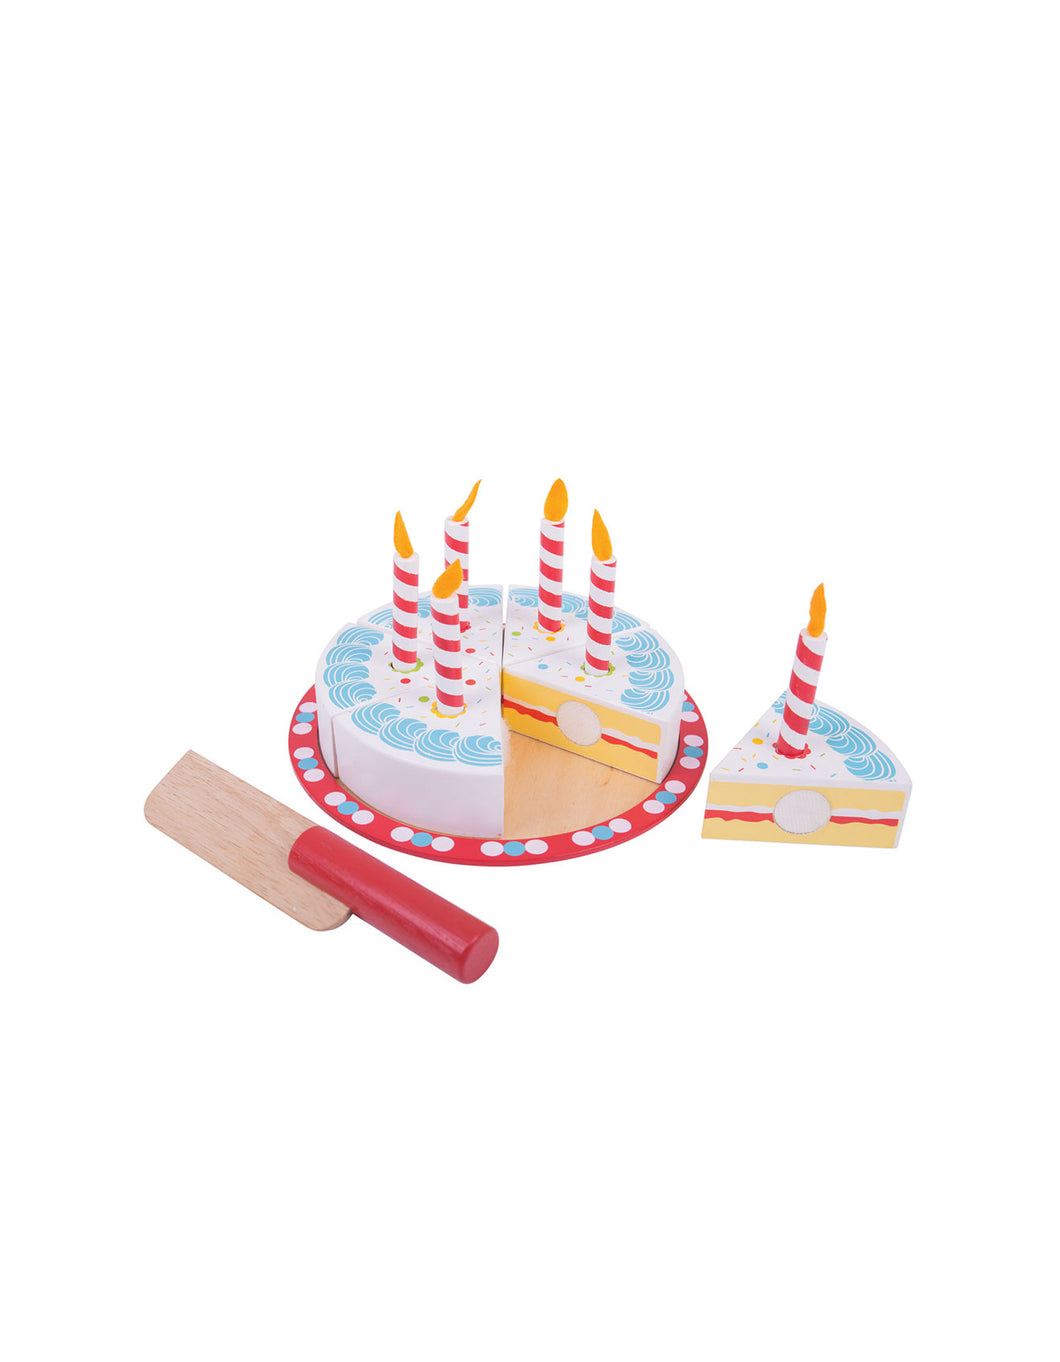 Wooden Cutting Birthday Cake With Candles